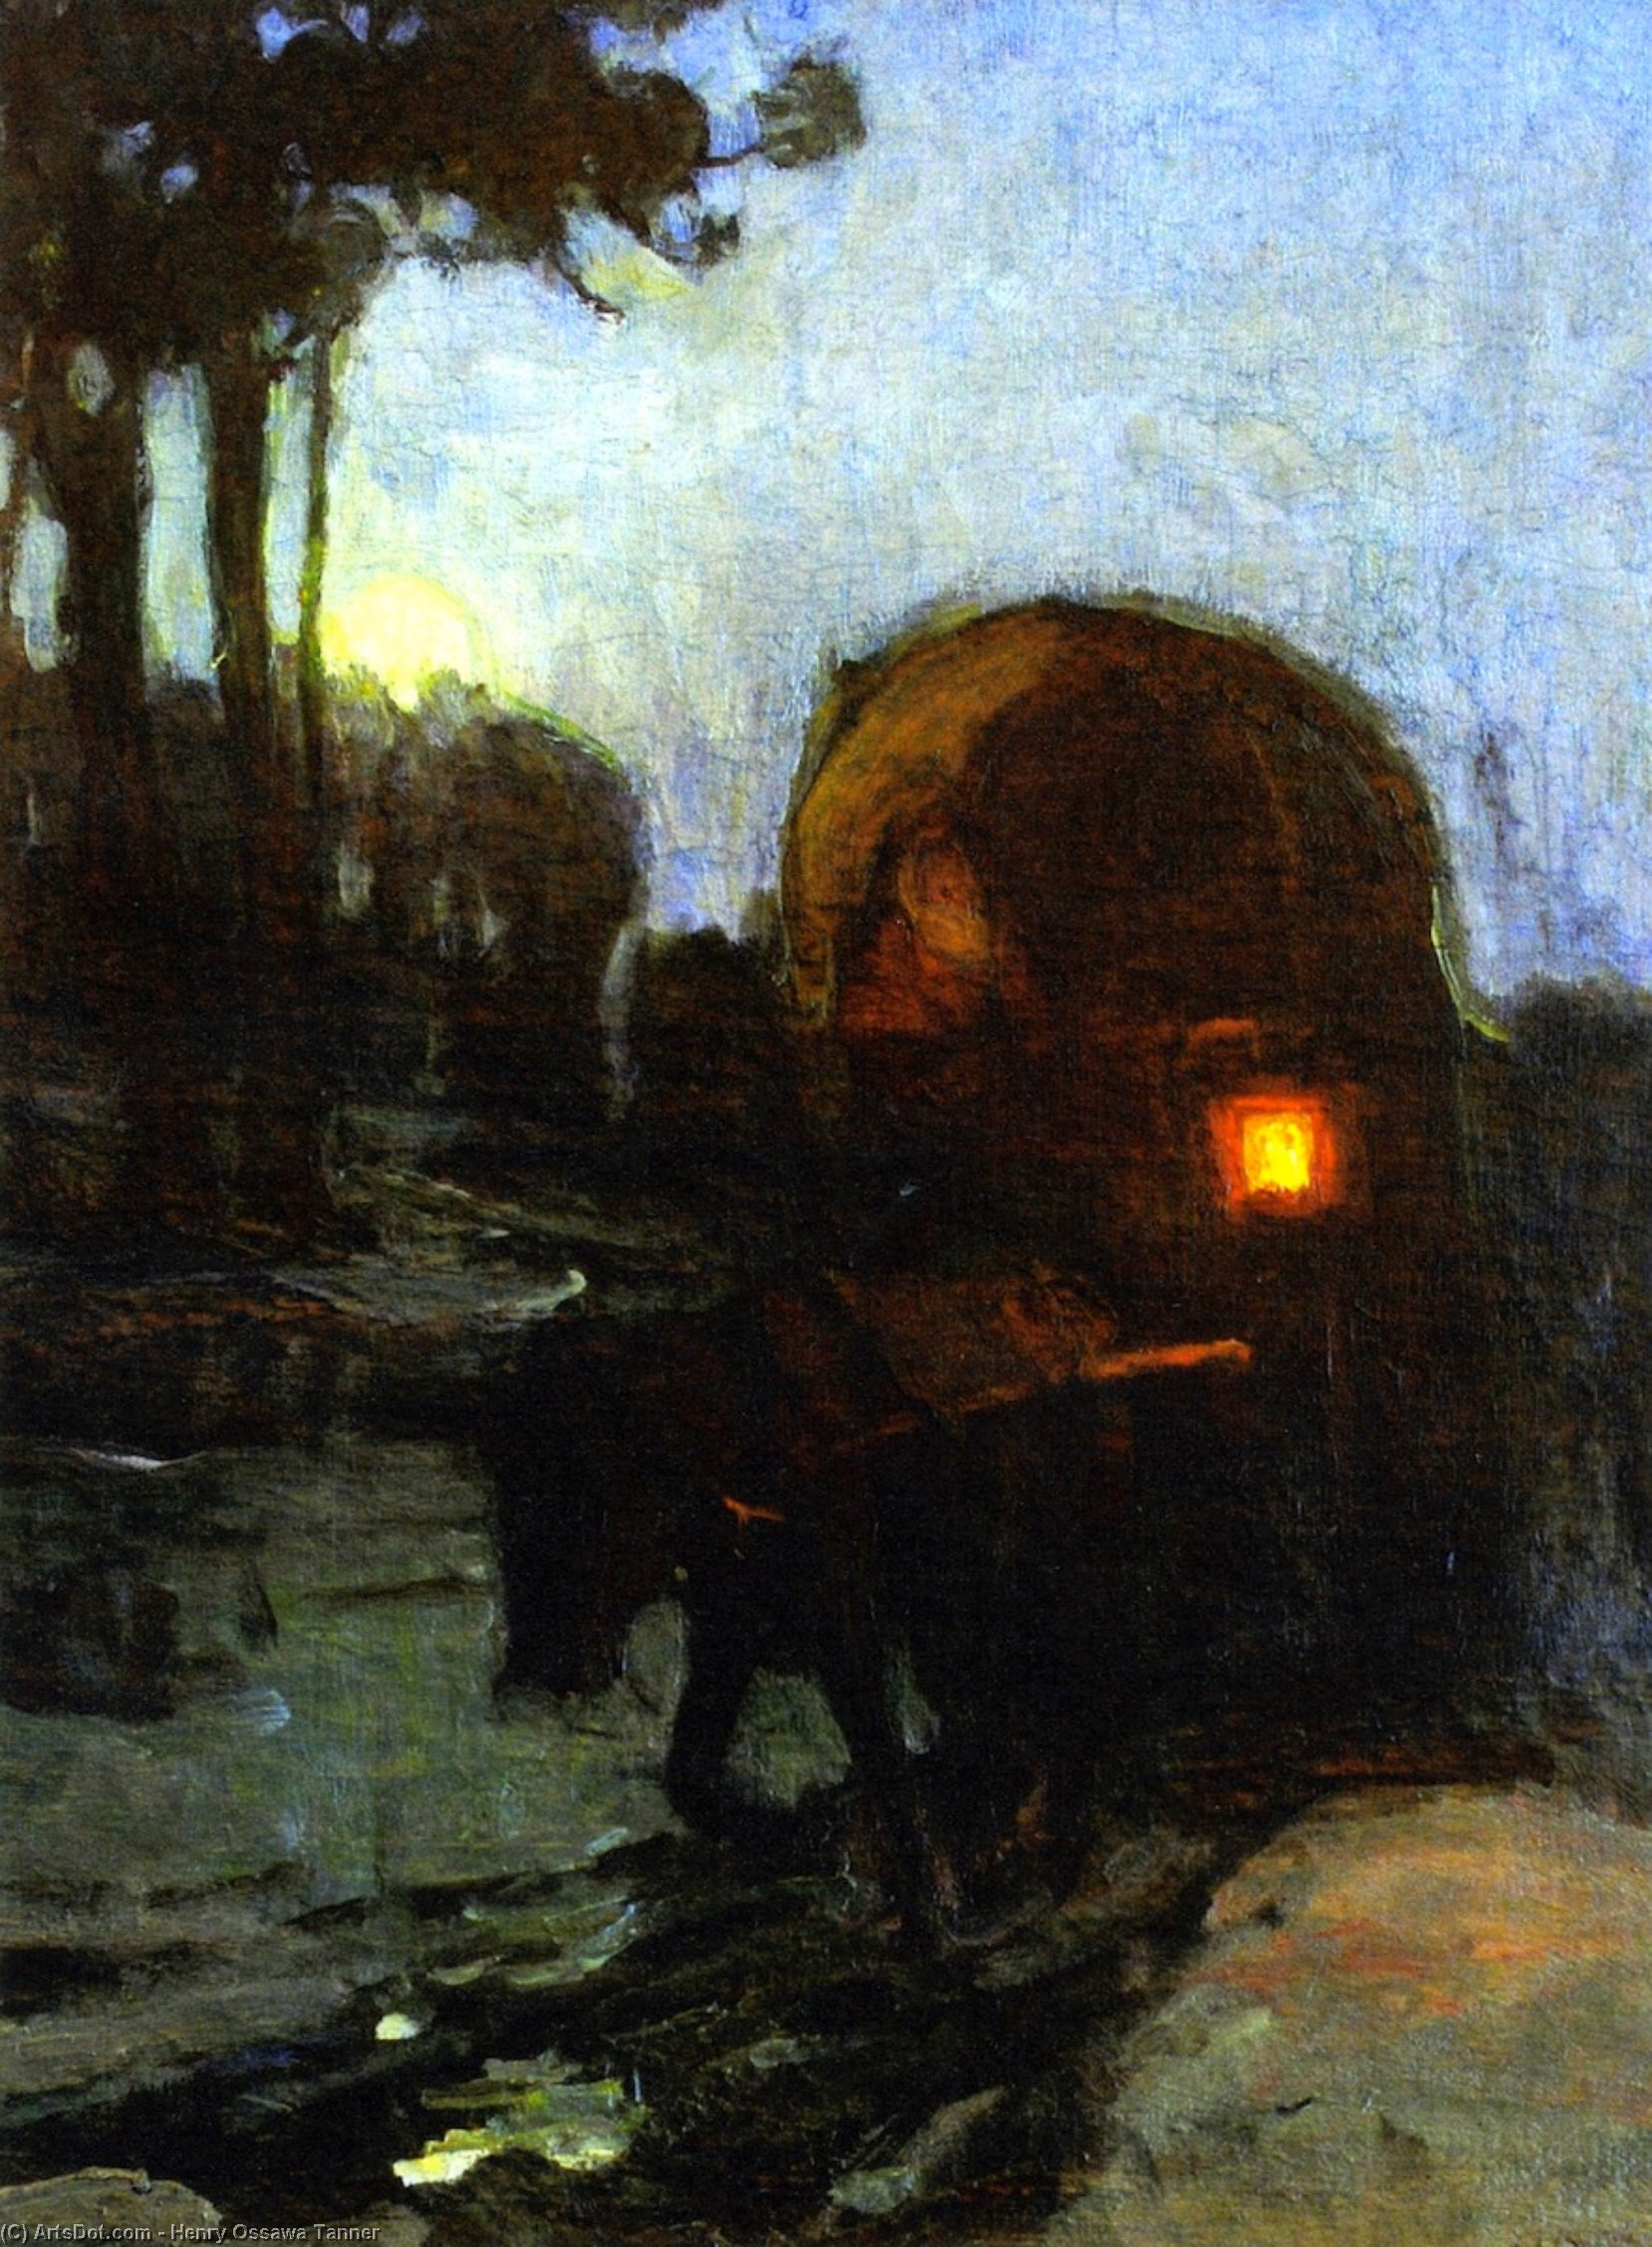 Return at Night from the Market, 1912 by Henry Ossawa Tanner (1859-1937, United States) | ArtsDot.com